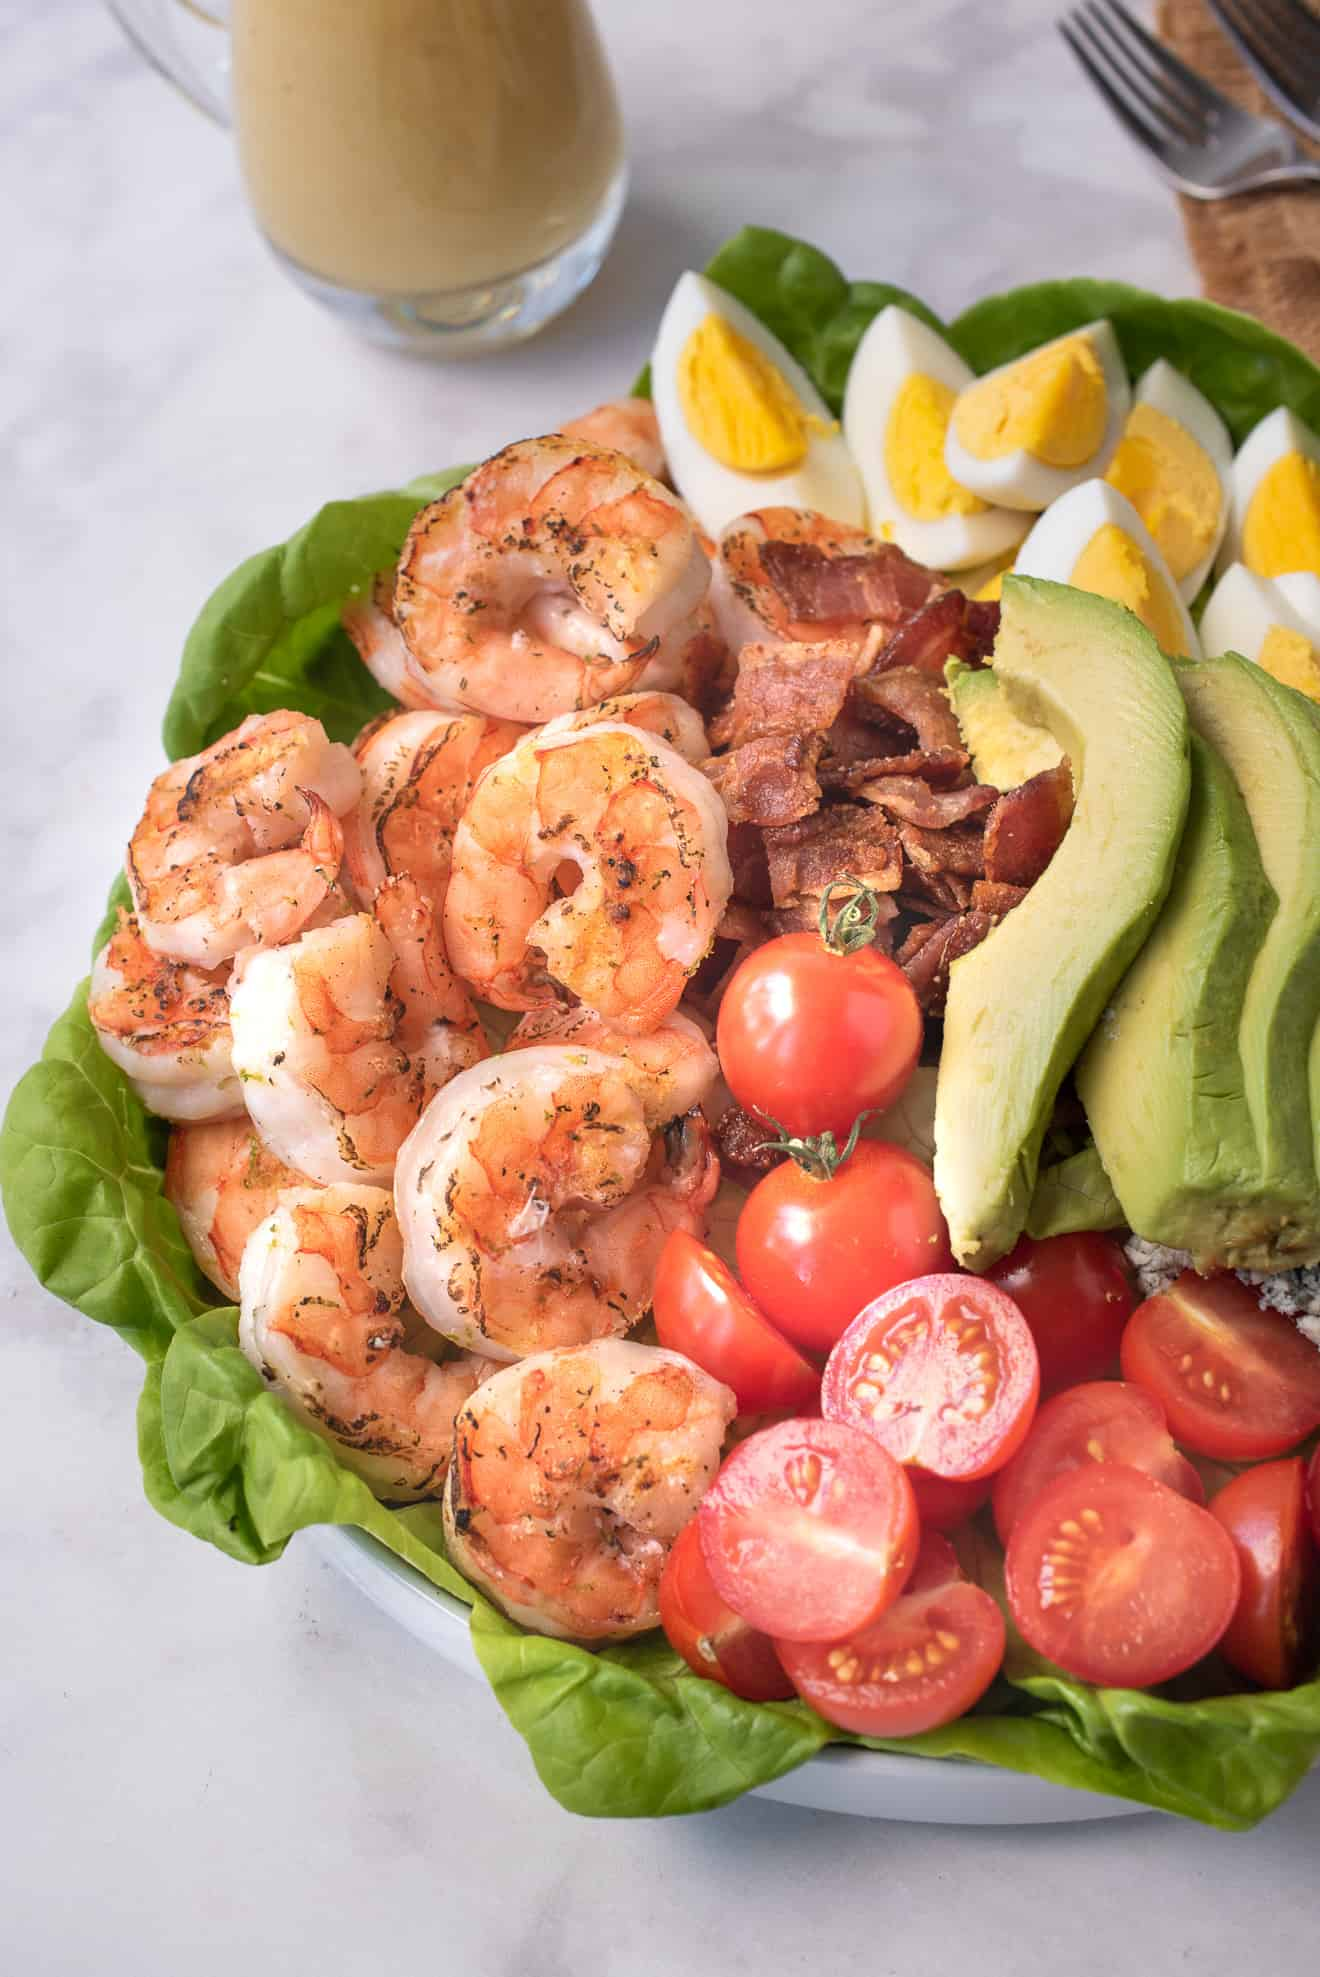 A closeup of the salad showing the grilled shrimp